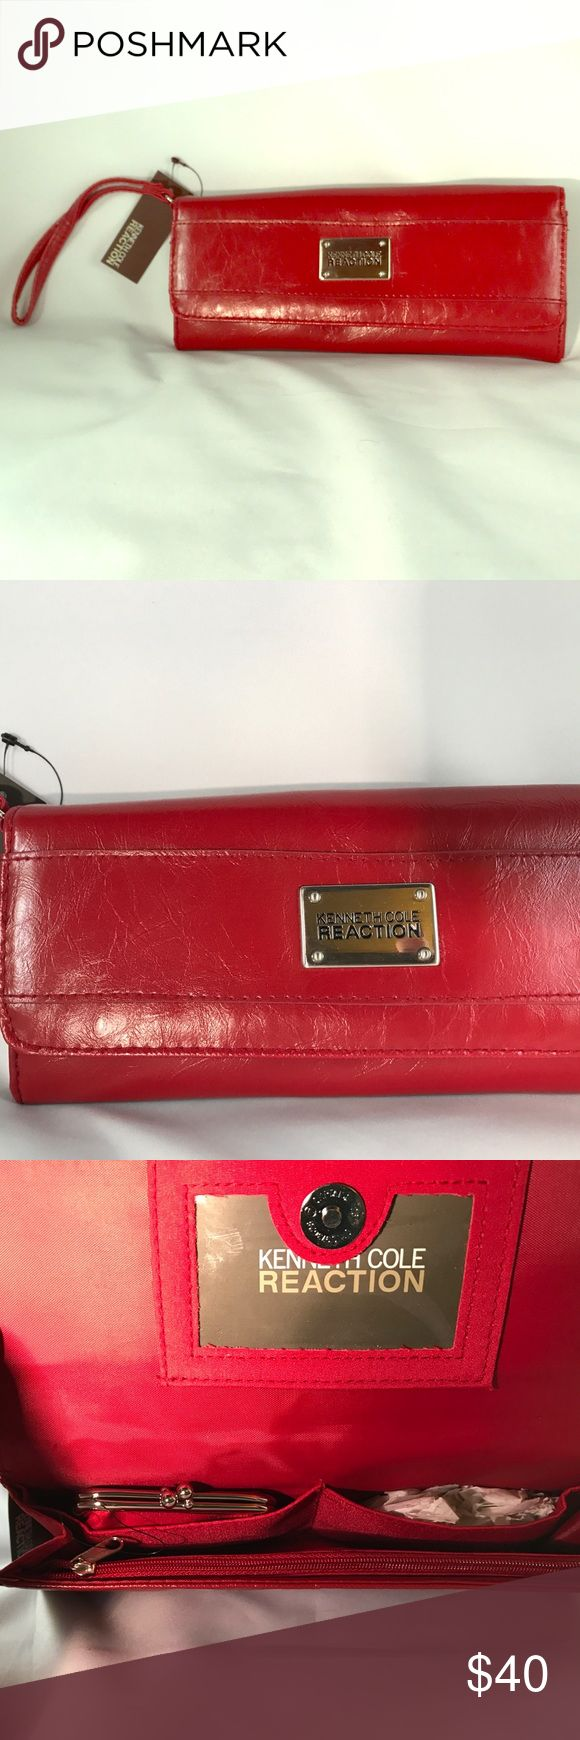 Kenneth Cole Reaction Red Clutch Purse NWT This beautiful clutch purse is perfect for those elegant evenings, proms, weddings, or a night out with the crowd. It's NWT. Original price $50.00. Has zipper compartment, small change purse. Kenneth Cole Reaction Bags Clutches & Wristlets